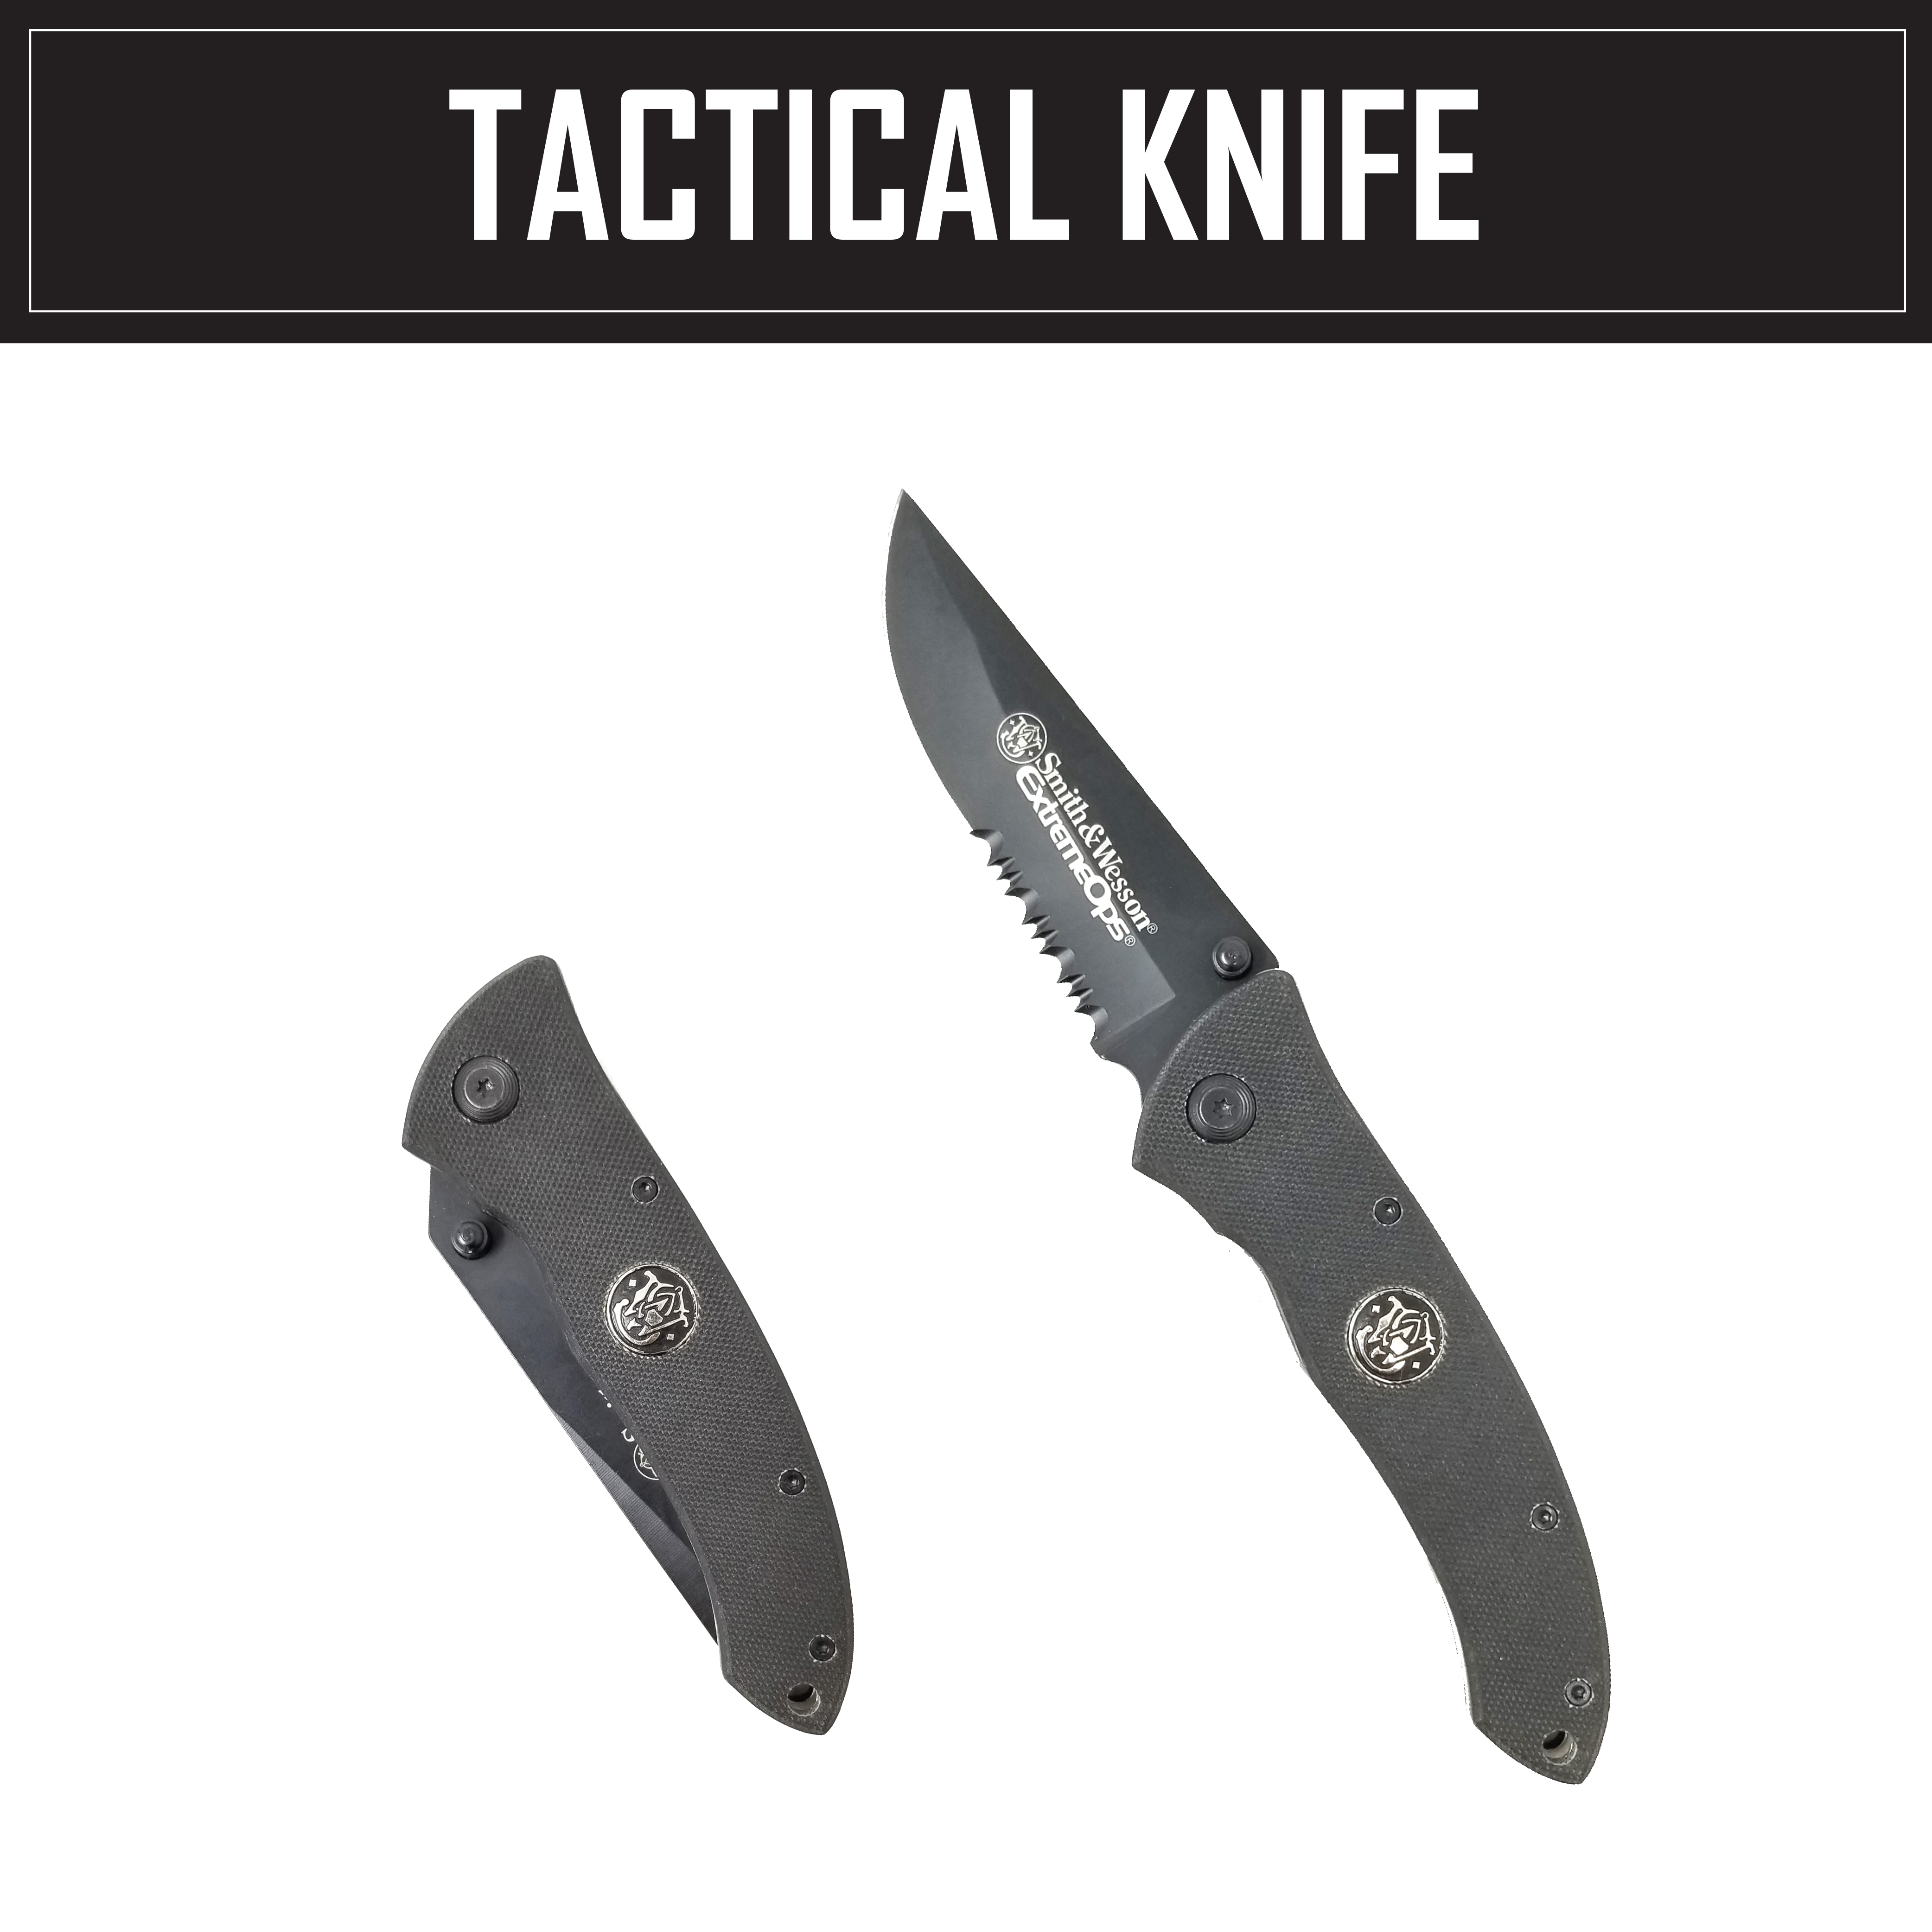 Black Stylish Slick Foldable Tactical Heavy Duty Stealth Knife with Pocket Clip